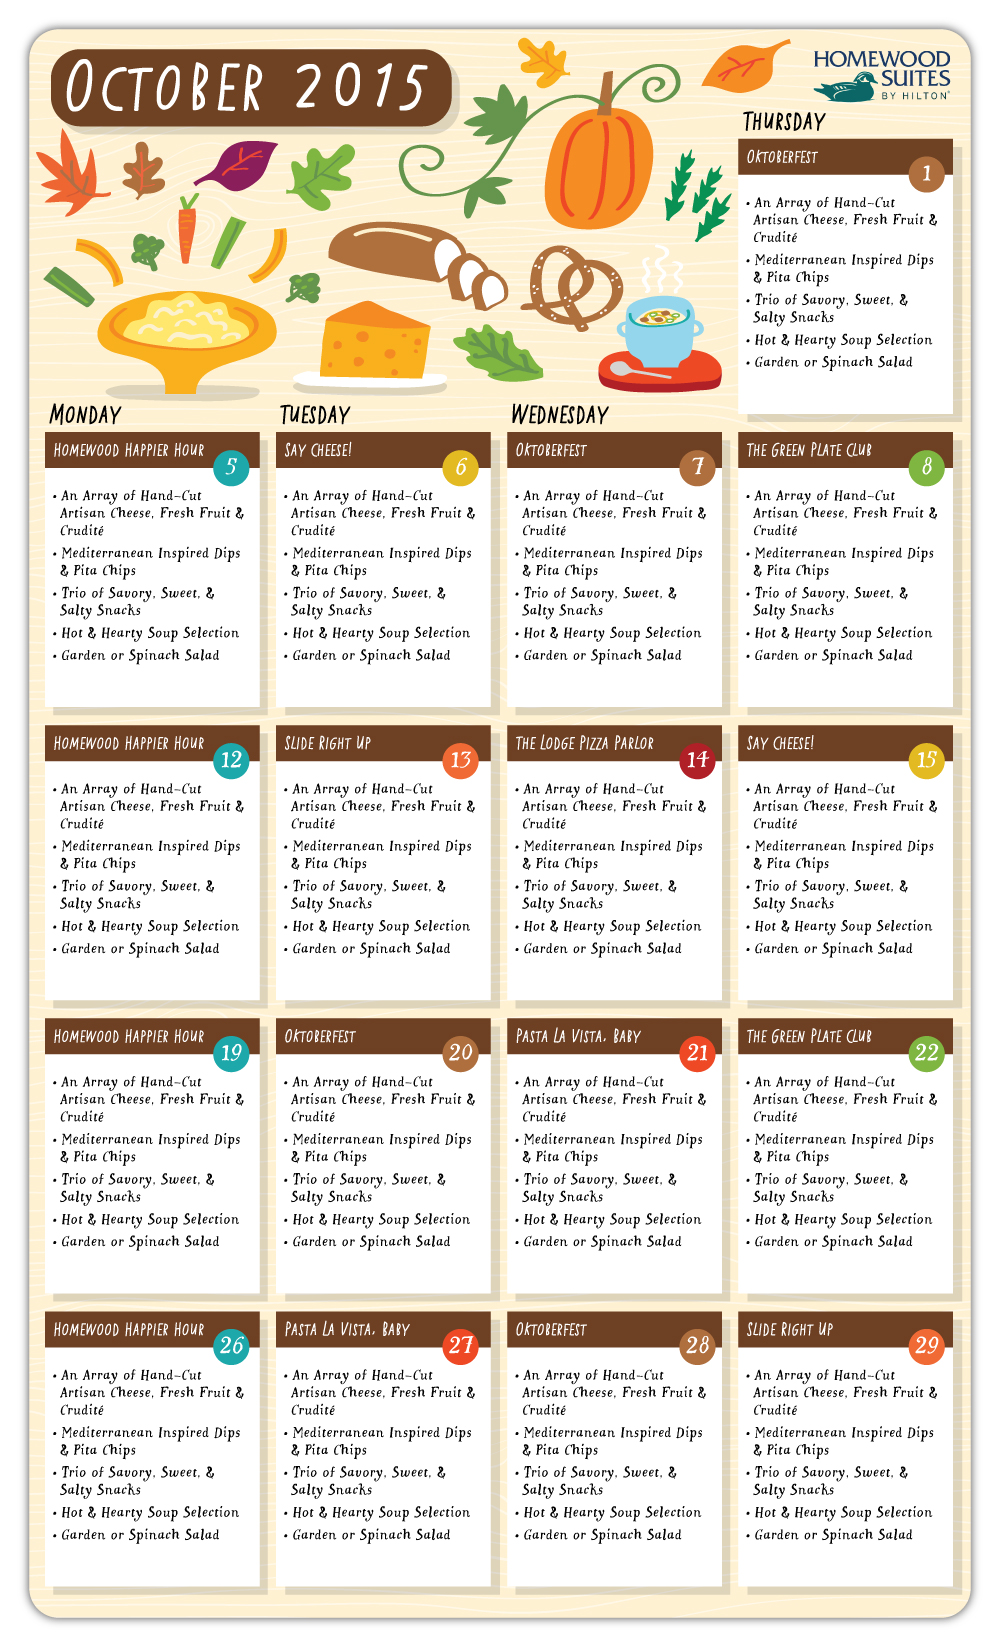 Homewood Suites by Hilton - Monthly meal calendar